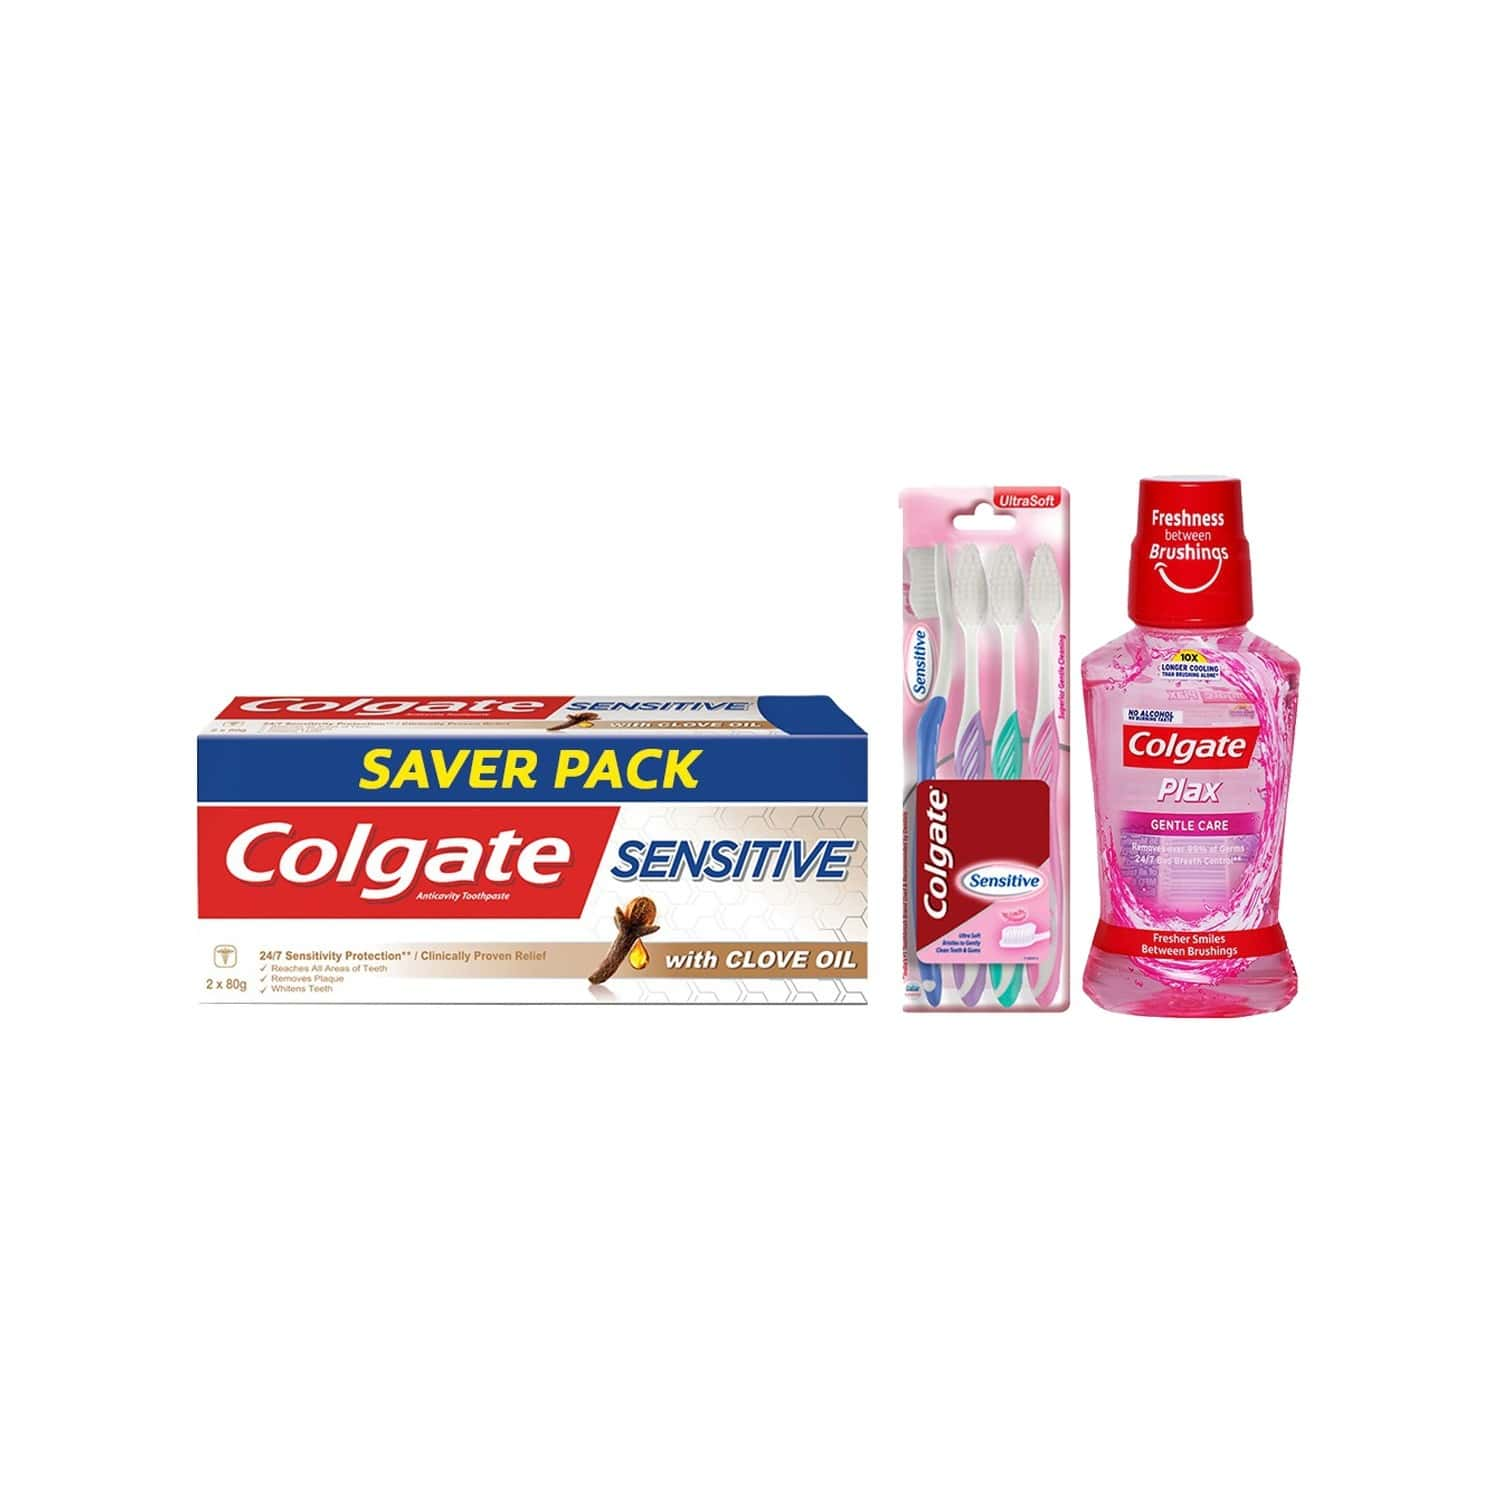 Colgate Sensitive With Clove Oil Toothpaste - 80gm (buy 1 Get 1 Free) With Sensitive Toobrush (pack Of 4) And Plax Sensitive Mouthwash - 250ml